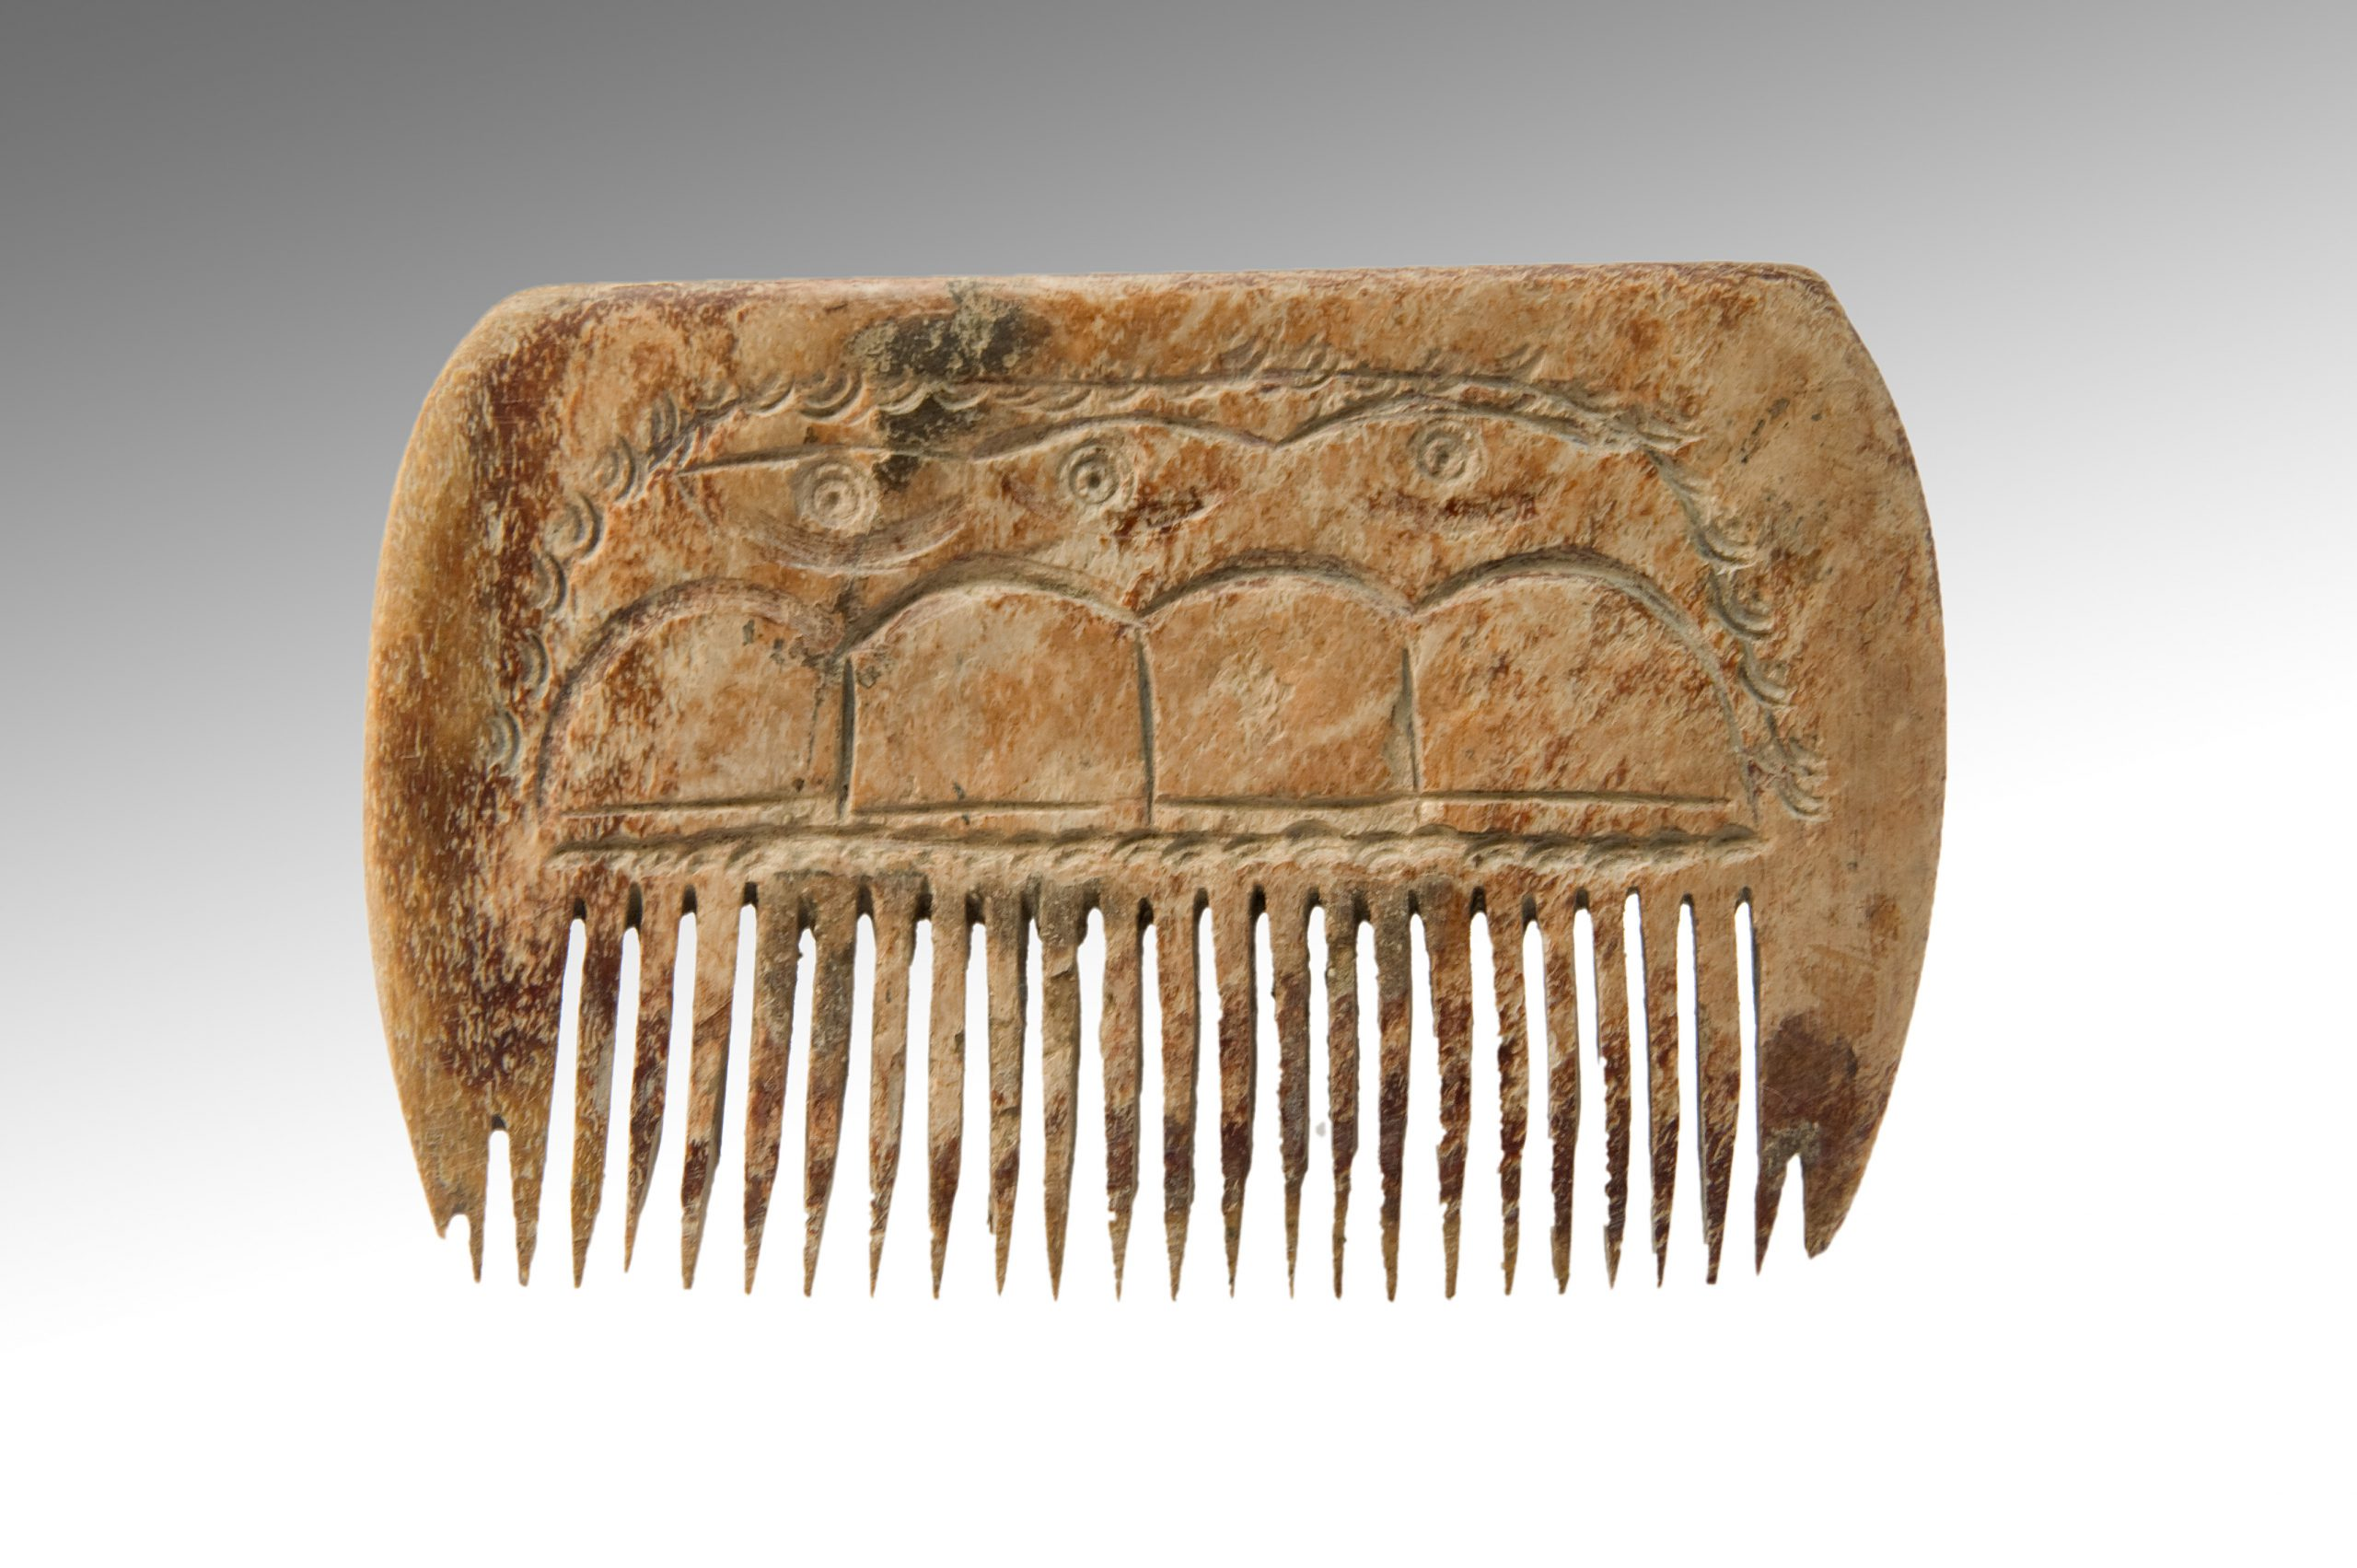 Image of An Early Medieval Bone Comb